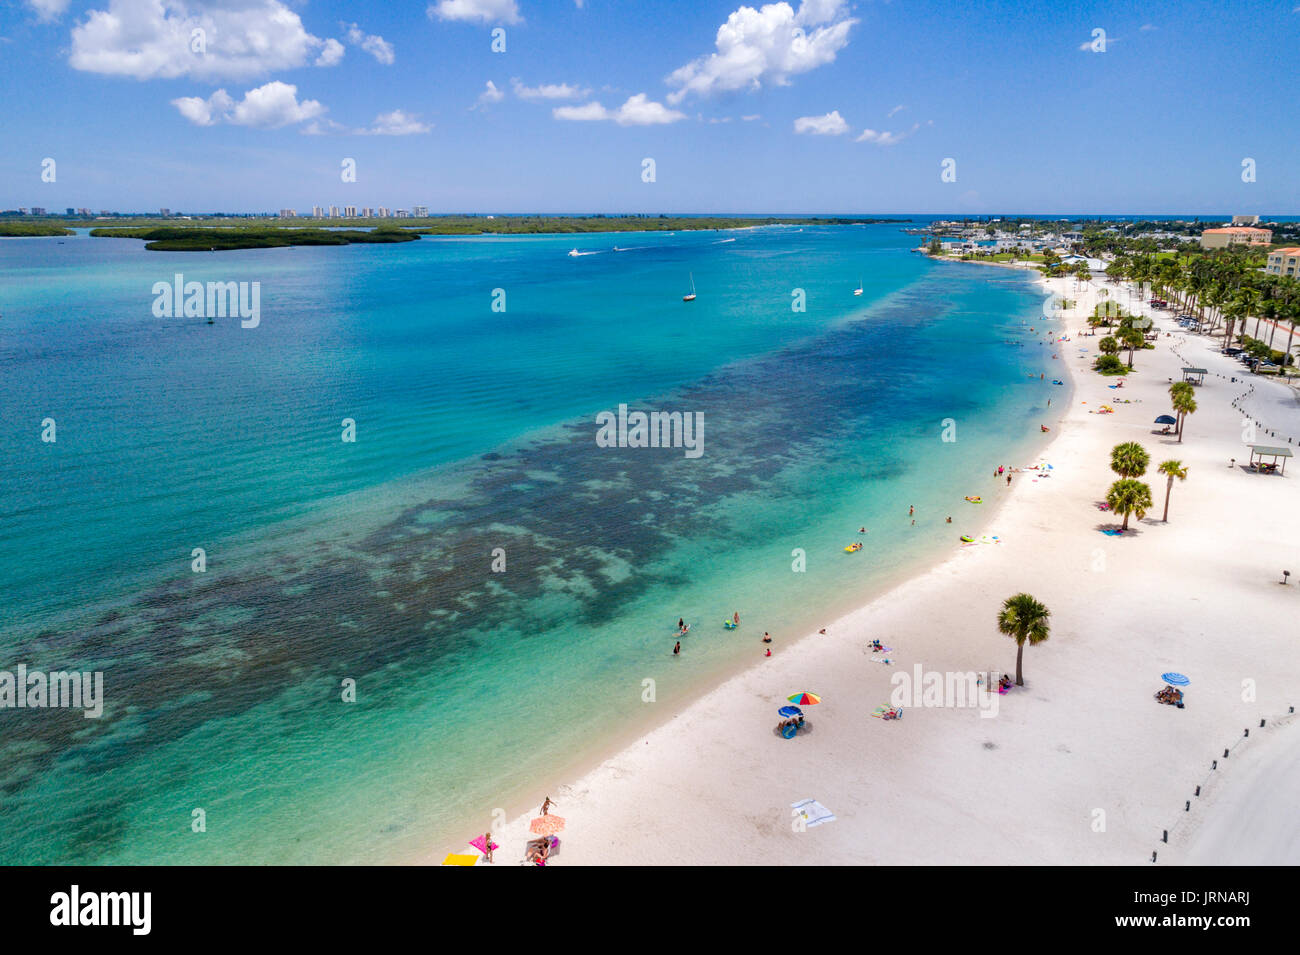 Florida Fort Ft Pierce Museum Pointe Park Indian River Highway route A1A sand aerial overhead view bird's eye above sunbathers - Stock Image